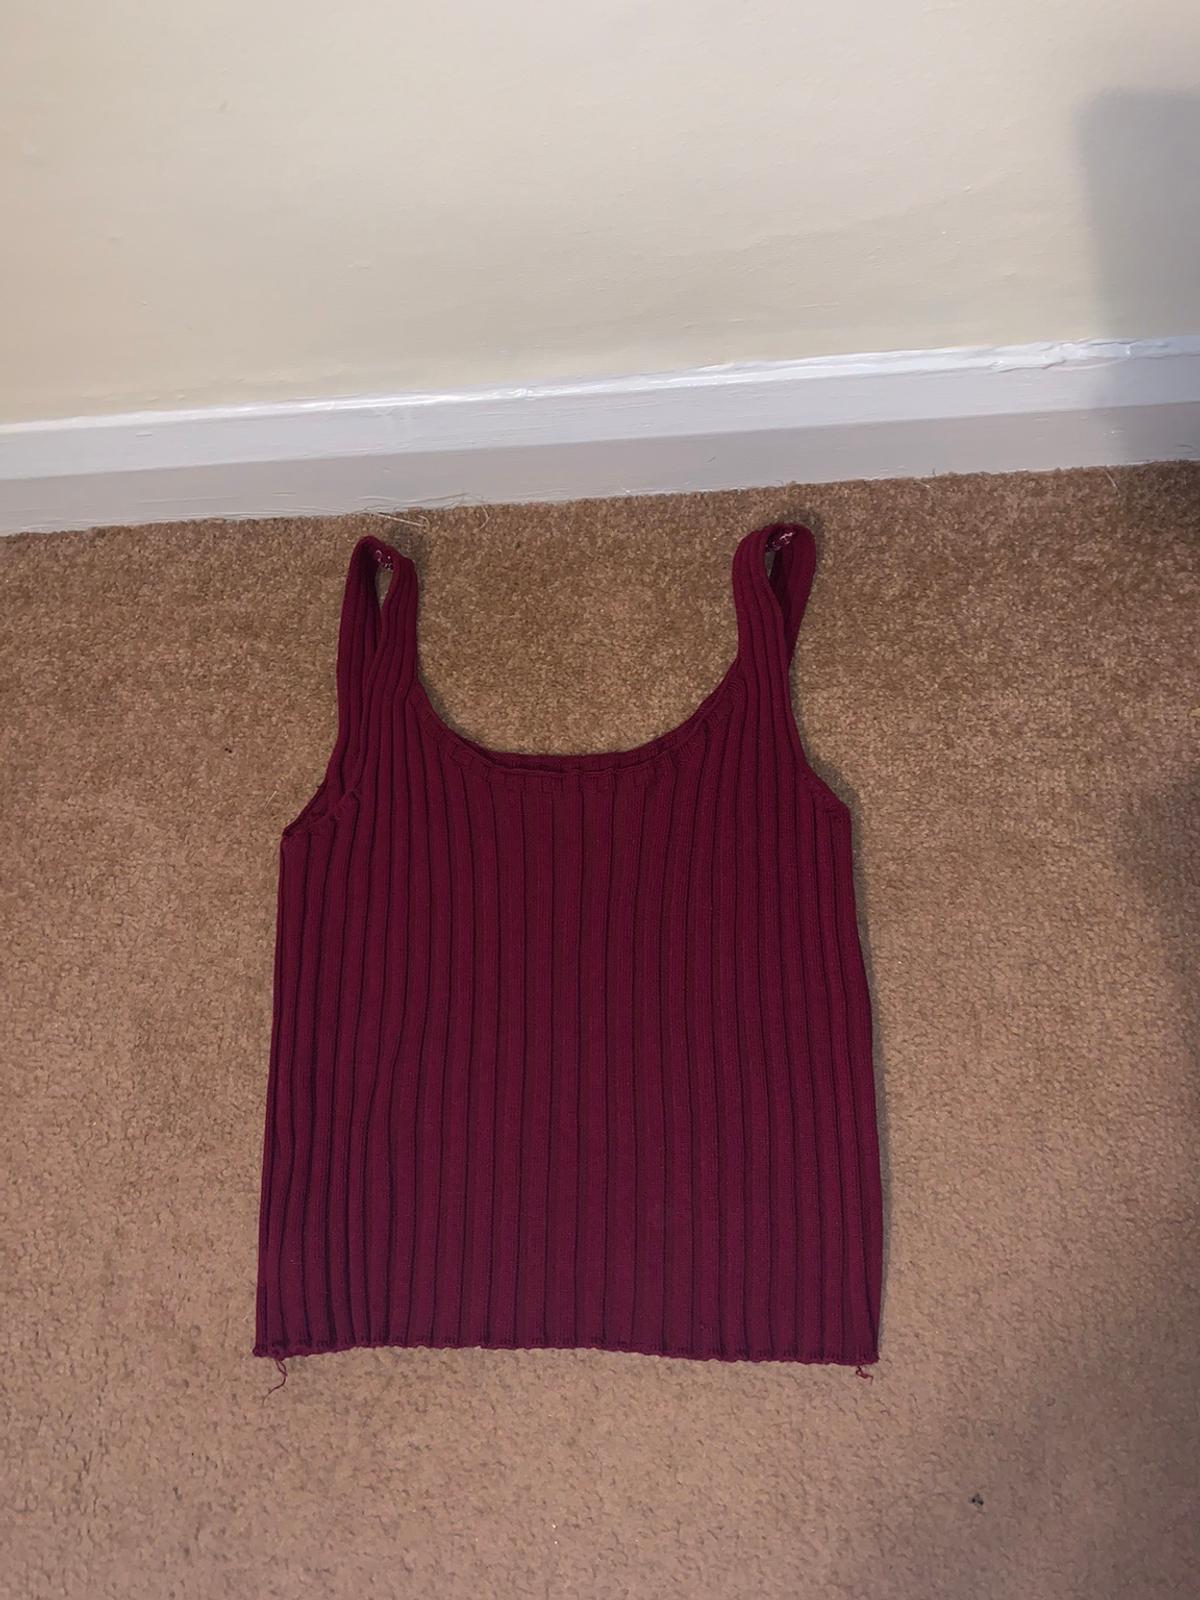 got this top as a gift but is to big for me so selling :) no tag so don't know the brand